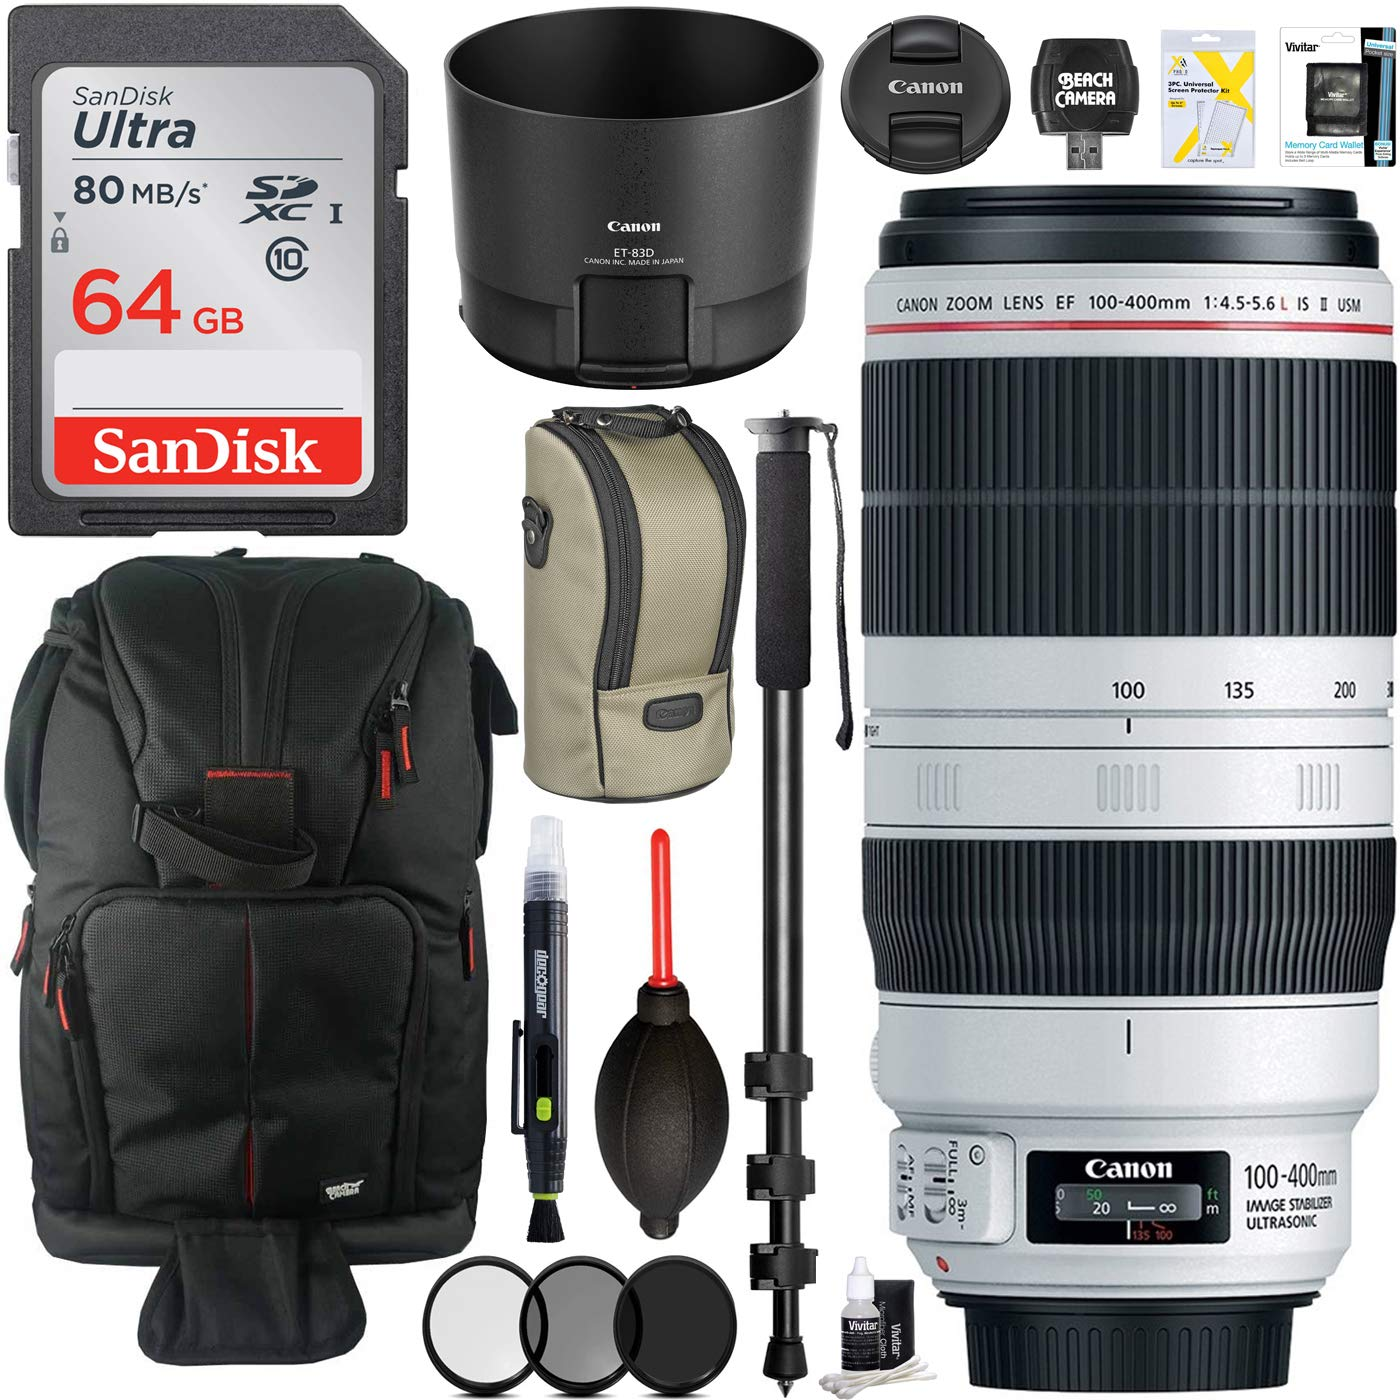 77mm Filter Kit 72-Inch Monopod 5 Items Lens Blower and Accessories Lens Cleaning Pen Sling Backpack Canon 9524B002 EF 100-400mm f//4.5-5.6L is II USM Lens Bundle with 64GB Memory Card